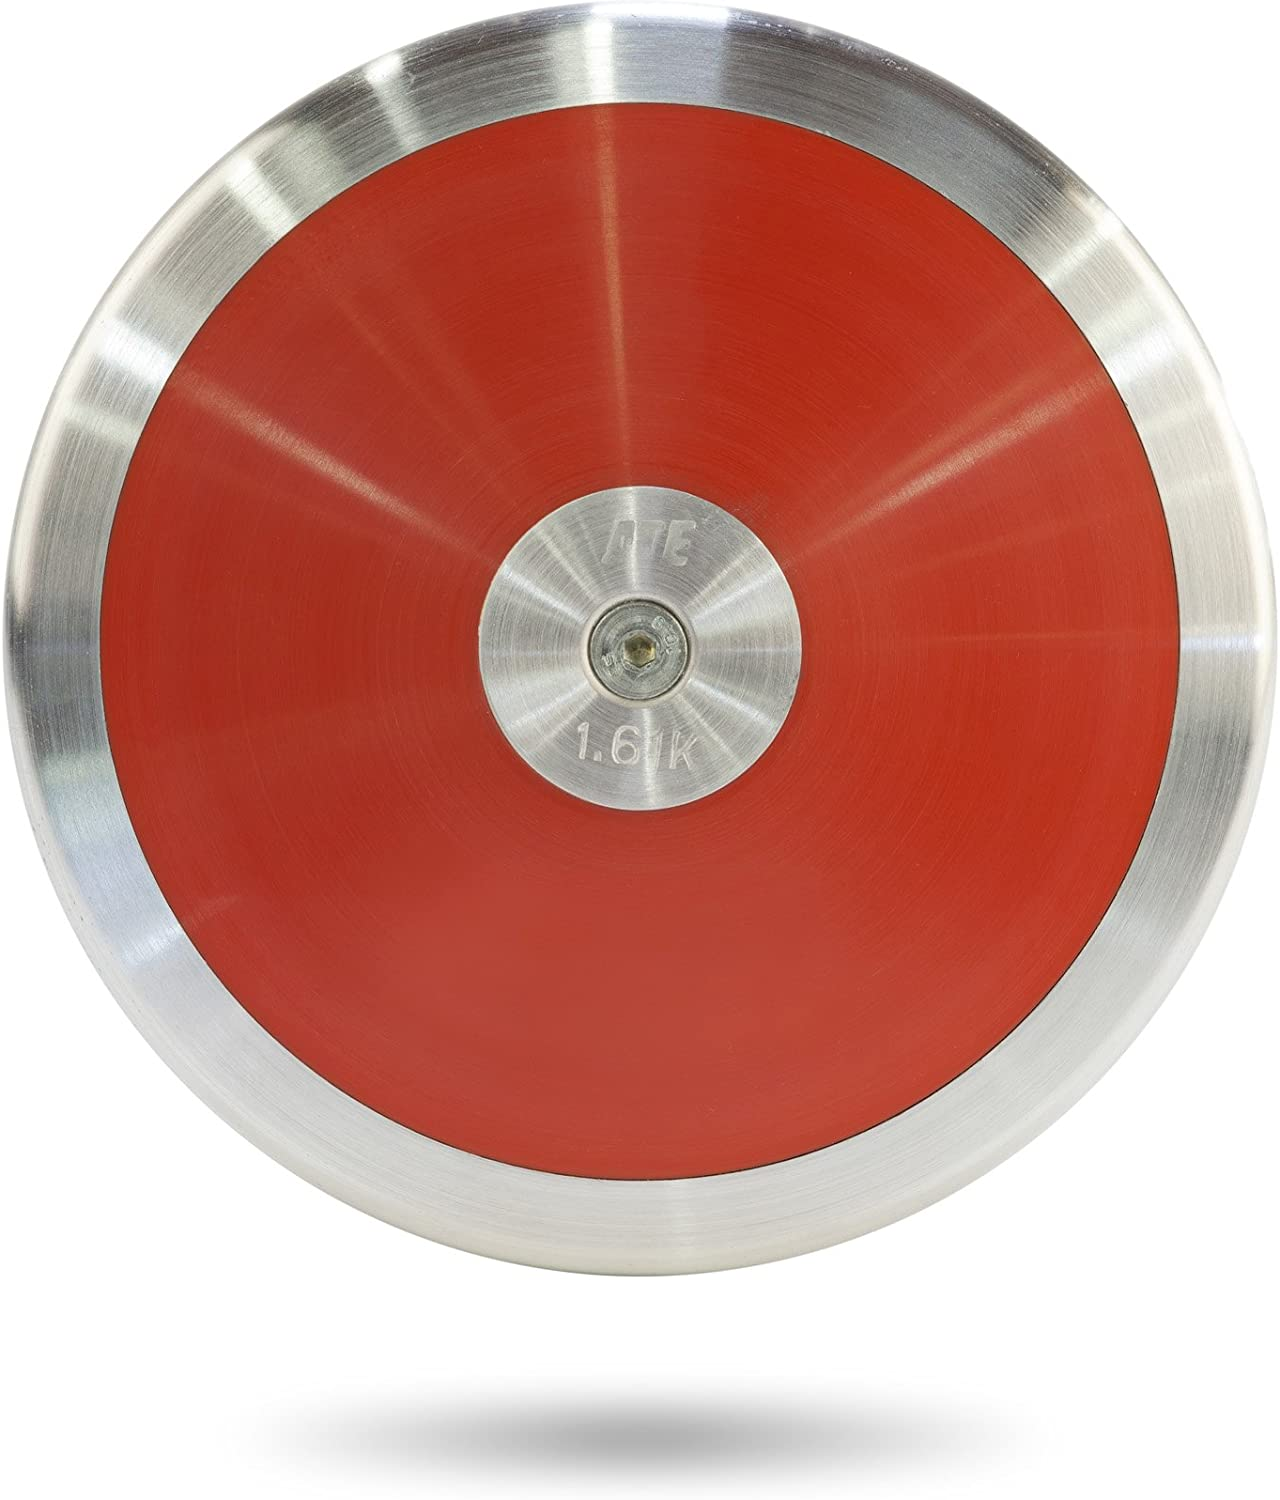 FIRE Discus 1.6k  POWER Series  Red